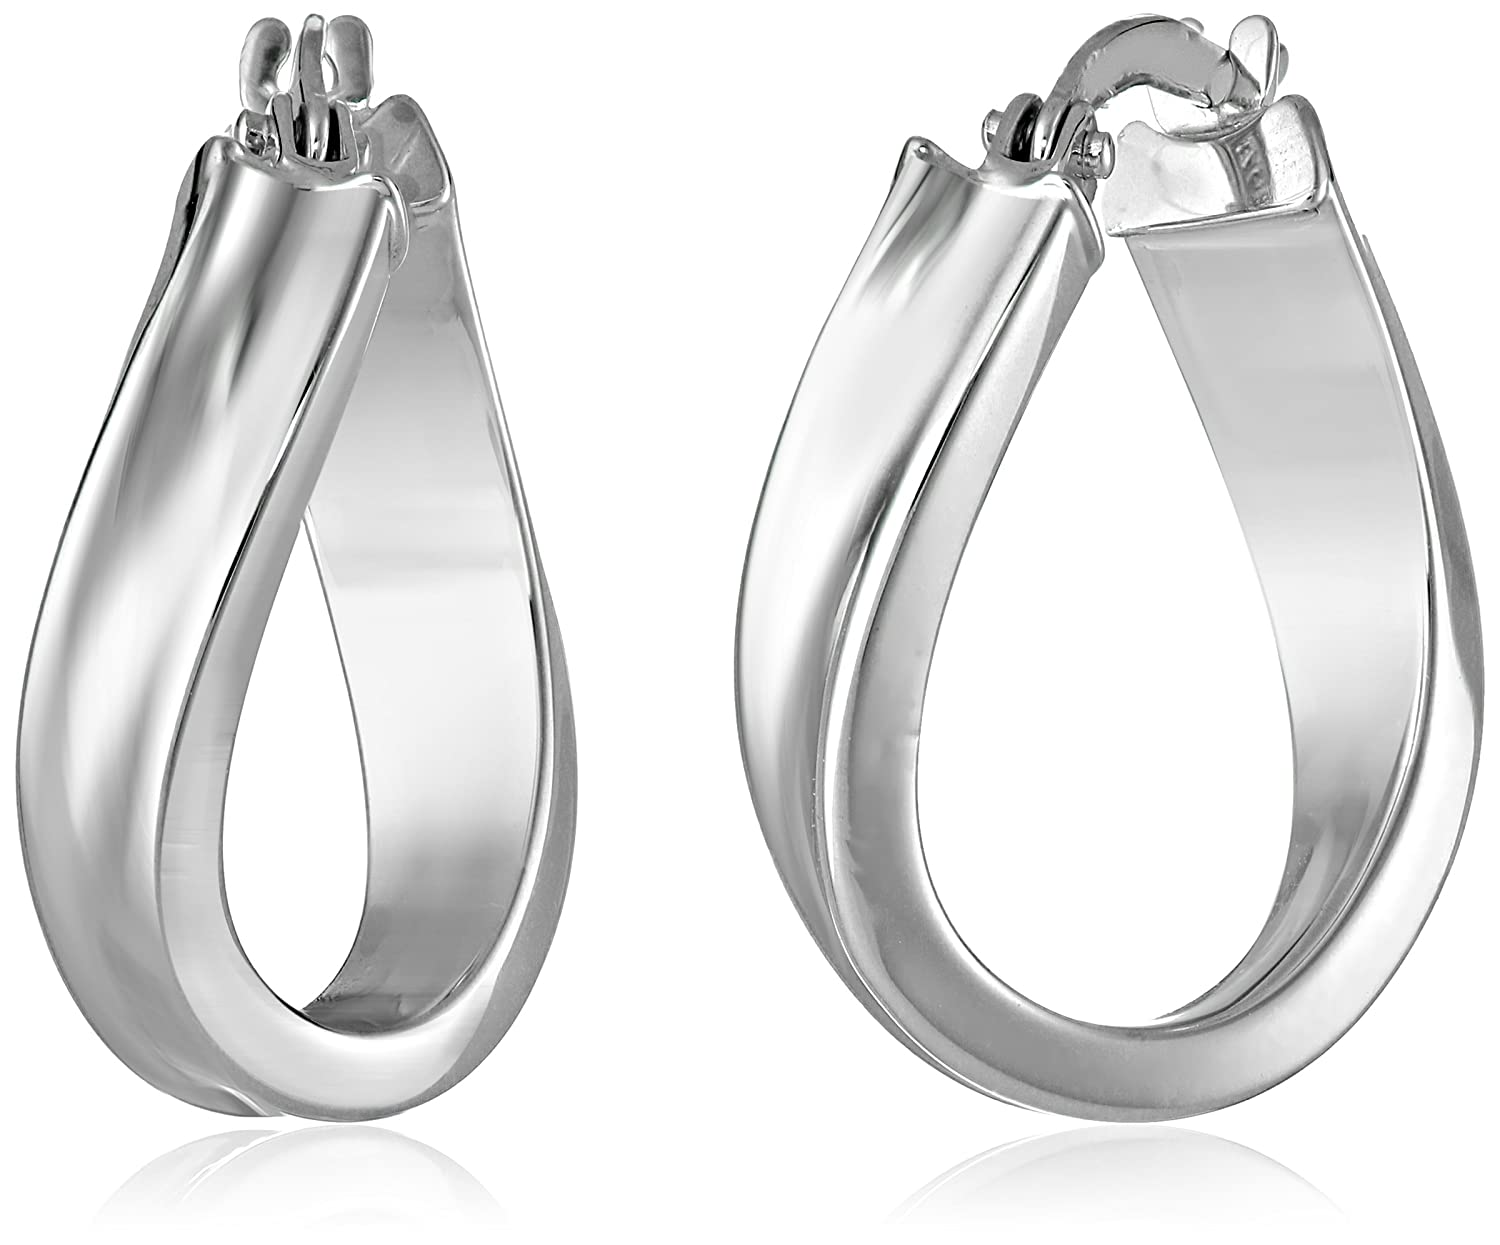 White Gold Filigree Hoop Earrings 14k White Gold Wavy Hoop